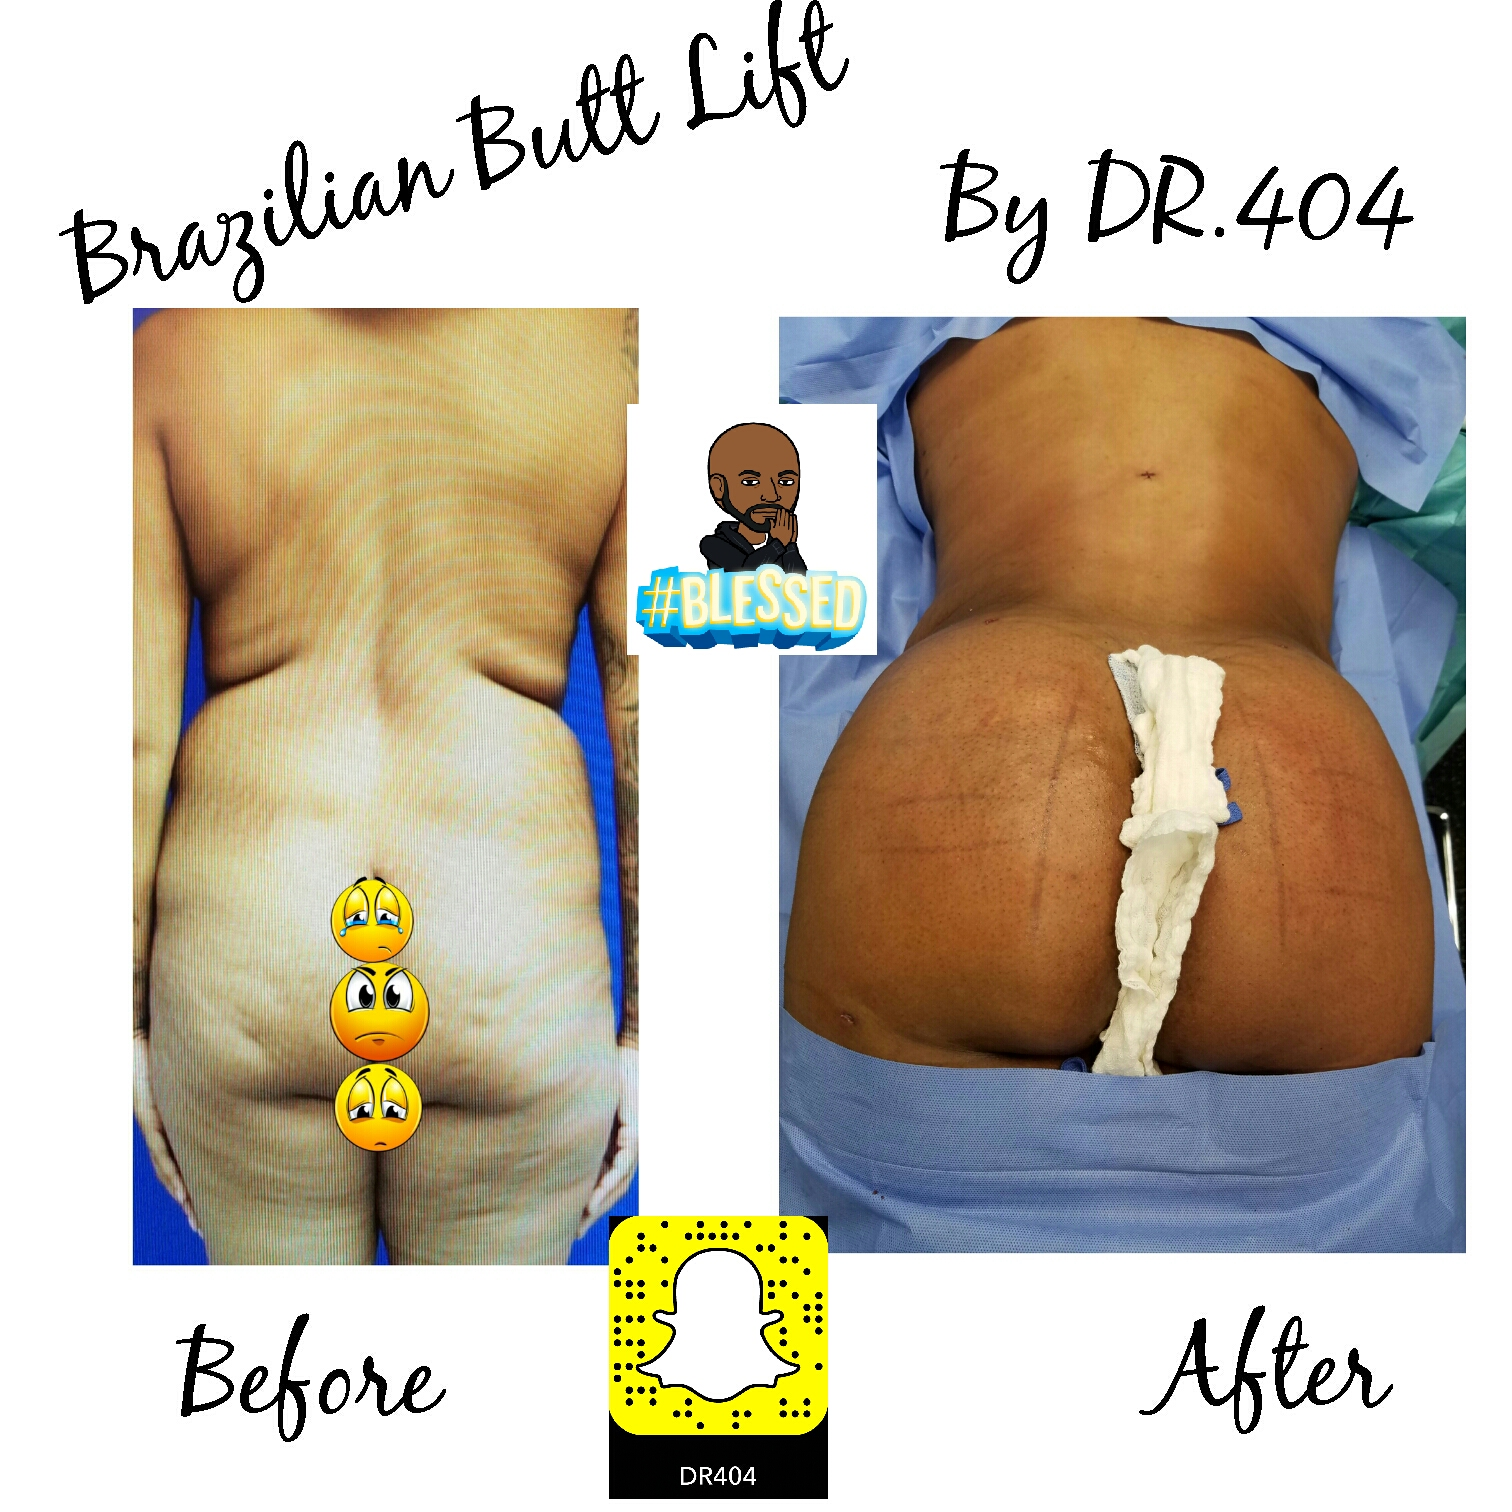 Brazilian Butt Lift Atlanta, Brazilian Butt Lift (BBL) utilizes liposuction plastic surgery performed by our liposuction surgeon. Liposuction is performed using tumescent anesthesia and traditional liposuction plastic surgery.  We are experts in laser liposuction (smartlipo), vaser liposuction and fat transfer, also known as fat grafting.  Brazilian butt lift atlanta has been popularized by Dr. Curves and others like therealdrmiami of snapchat fame have made Brazilian butt lifts extremely popular in recent years. Our autologous fat transfer is second to none and we utilize Platelet-Rich Plasma (PRP) which helps stabilize the fat transfer faster by promoting blood vessels to grow into the fat grafting. Most people think that a Brazilian butt lift (BBL) is a plastic surgery procedure but instead it is a cosmetic surgery procedure strictly performed for enhancement of the buttock area to transform your butt into the big Brazilian butt and replicate the popular Brazilian ass that Brazilian butt women have been getting Brazilian butt lifts to have for years.  As part of our mommy makeover packages you can combine a Brazilian ass with a tummy tuck and/or breast augmentation with a mastopexy, which is more commonly associated with a mommy makeover.